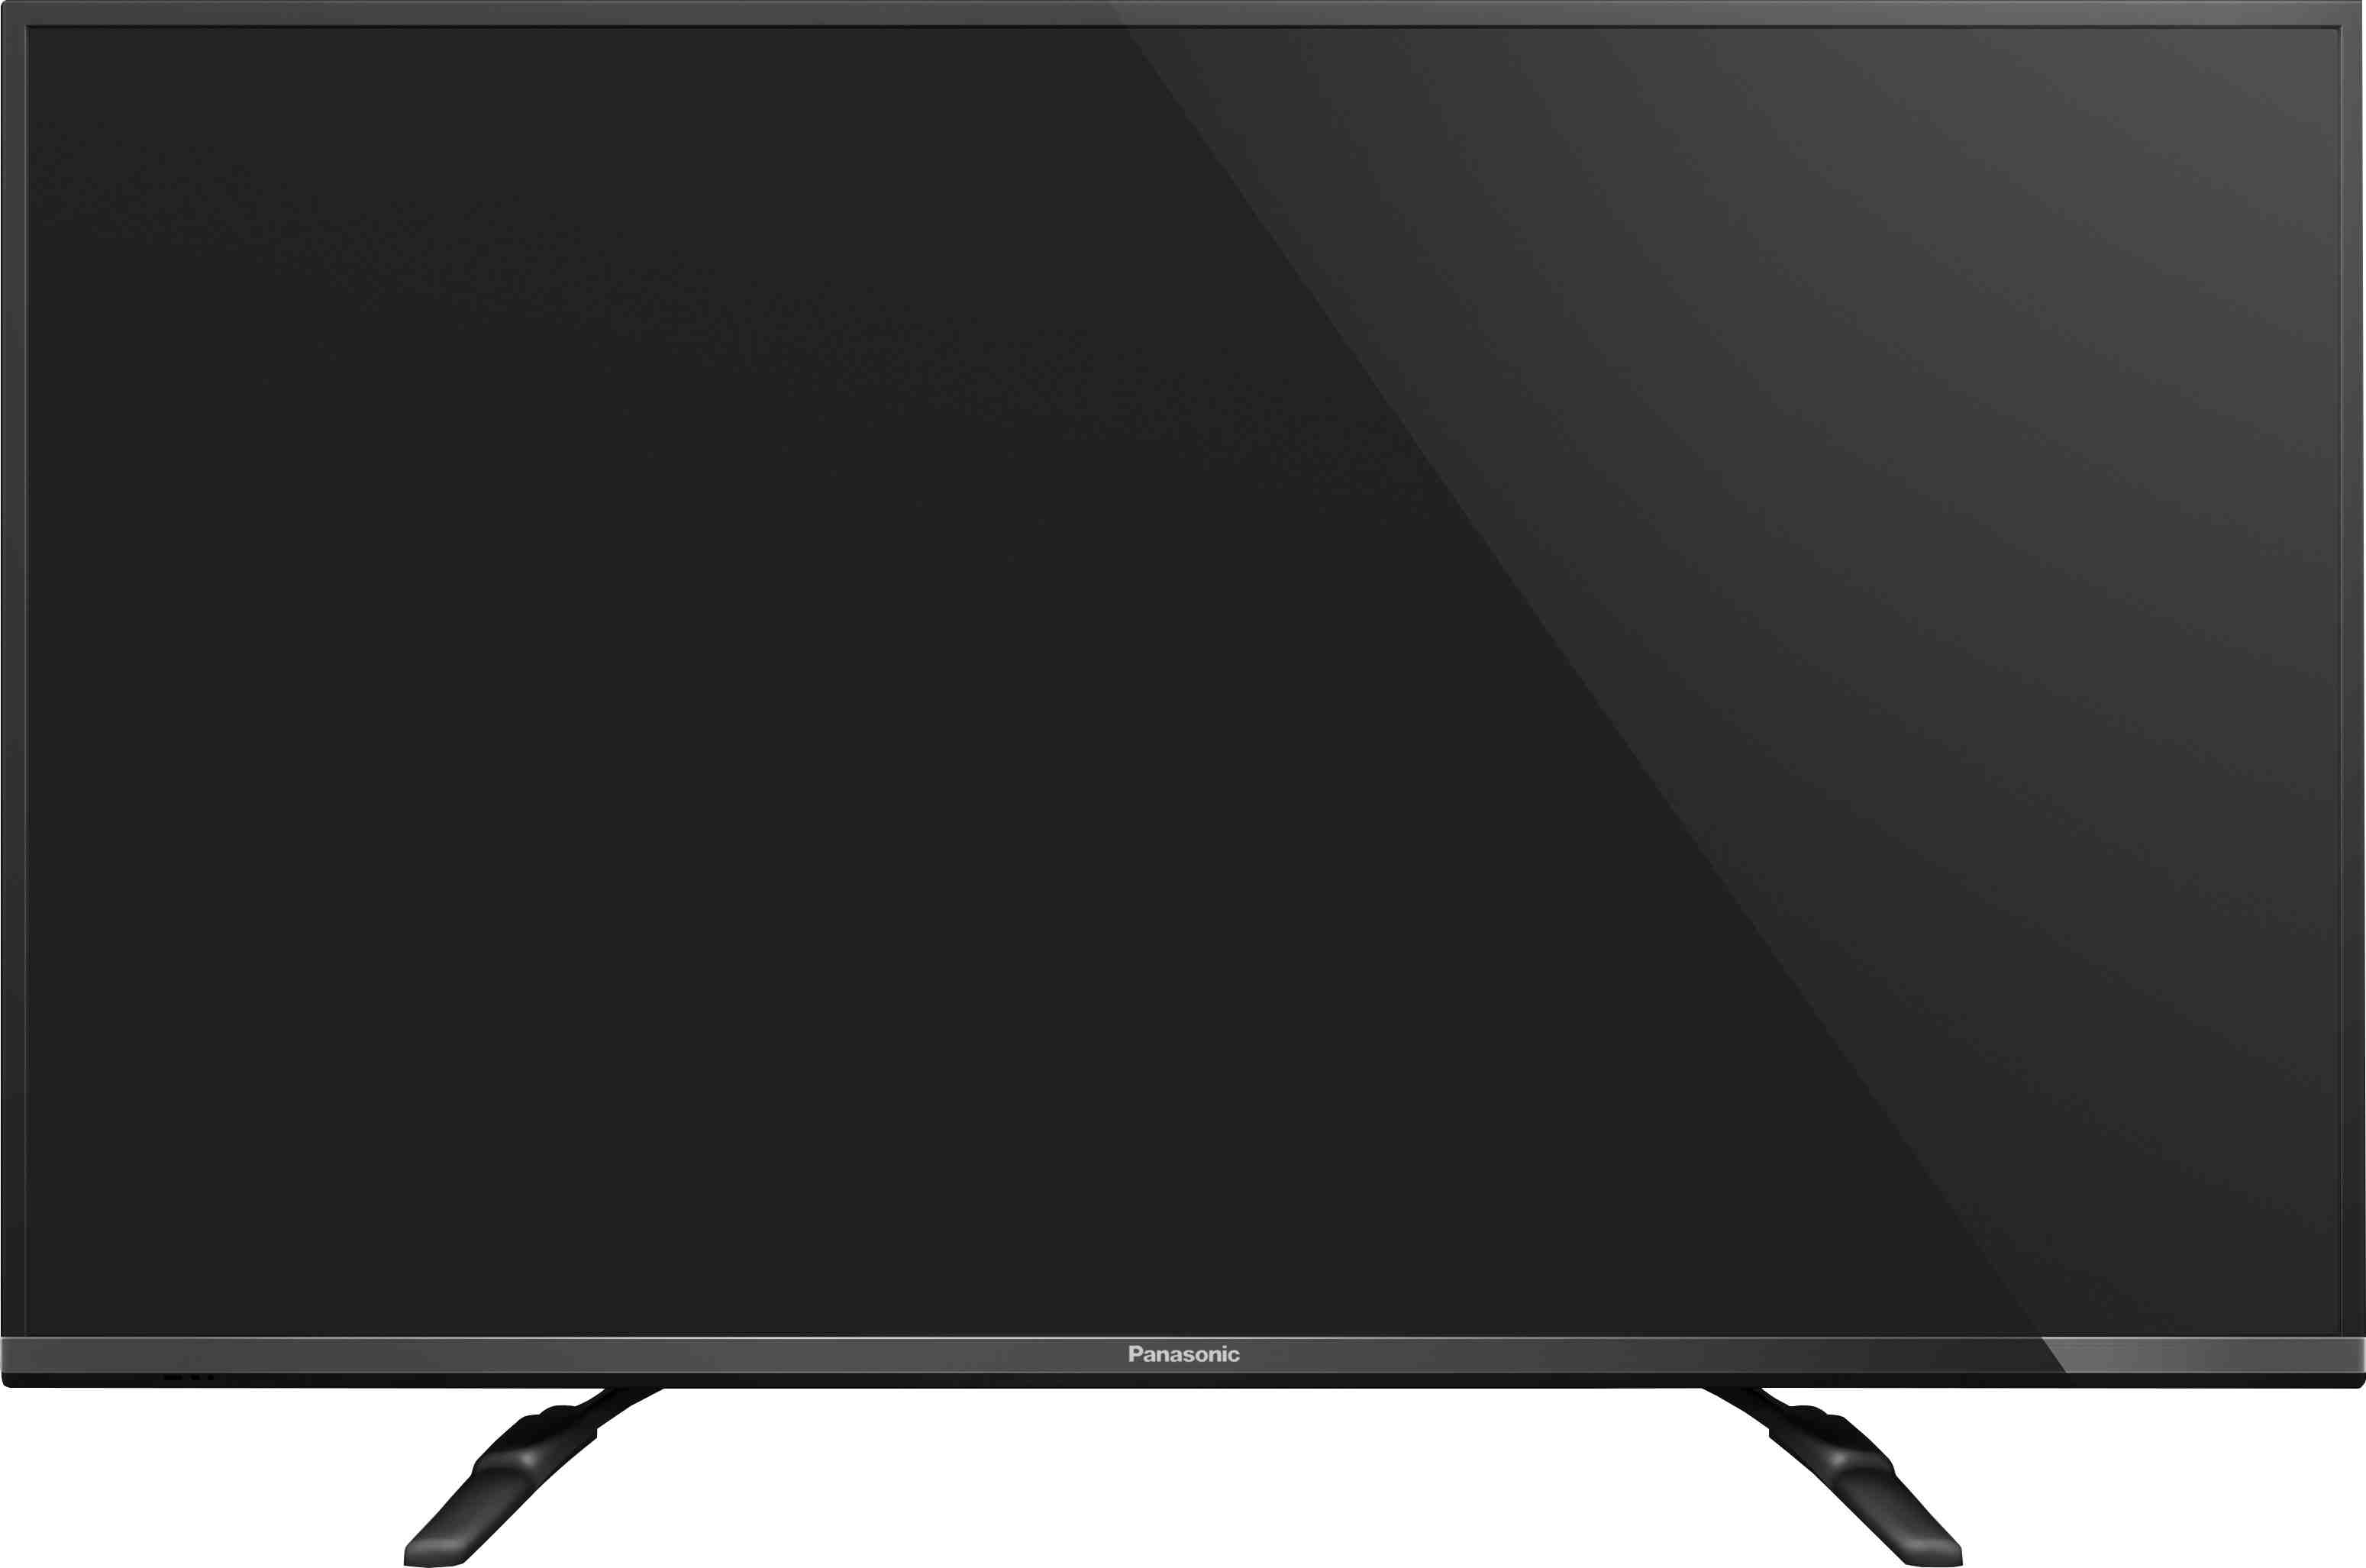 Best price on Panasonic TH-50C410D 50 Inch Full HD LED TV  in India